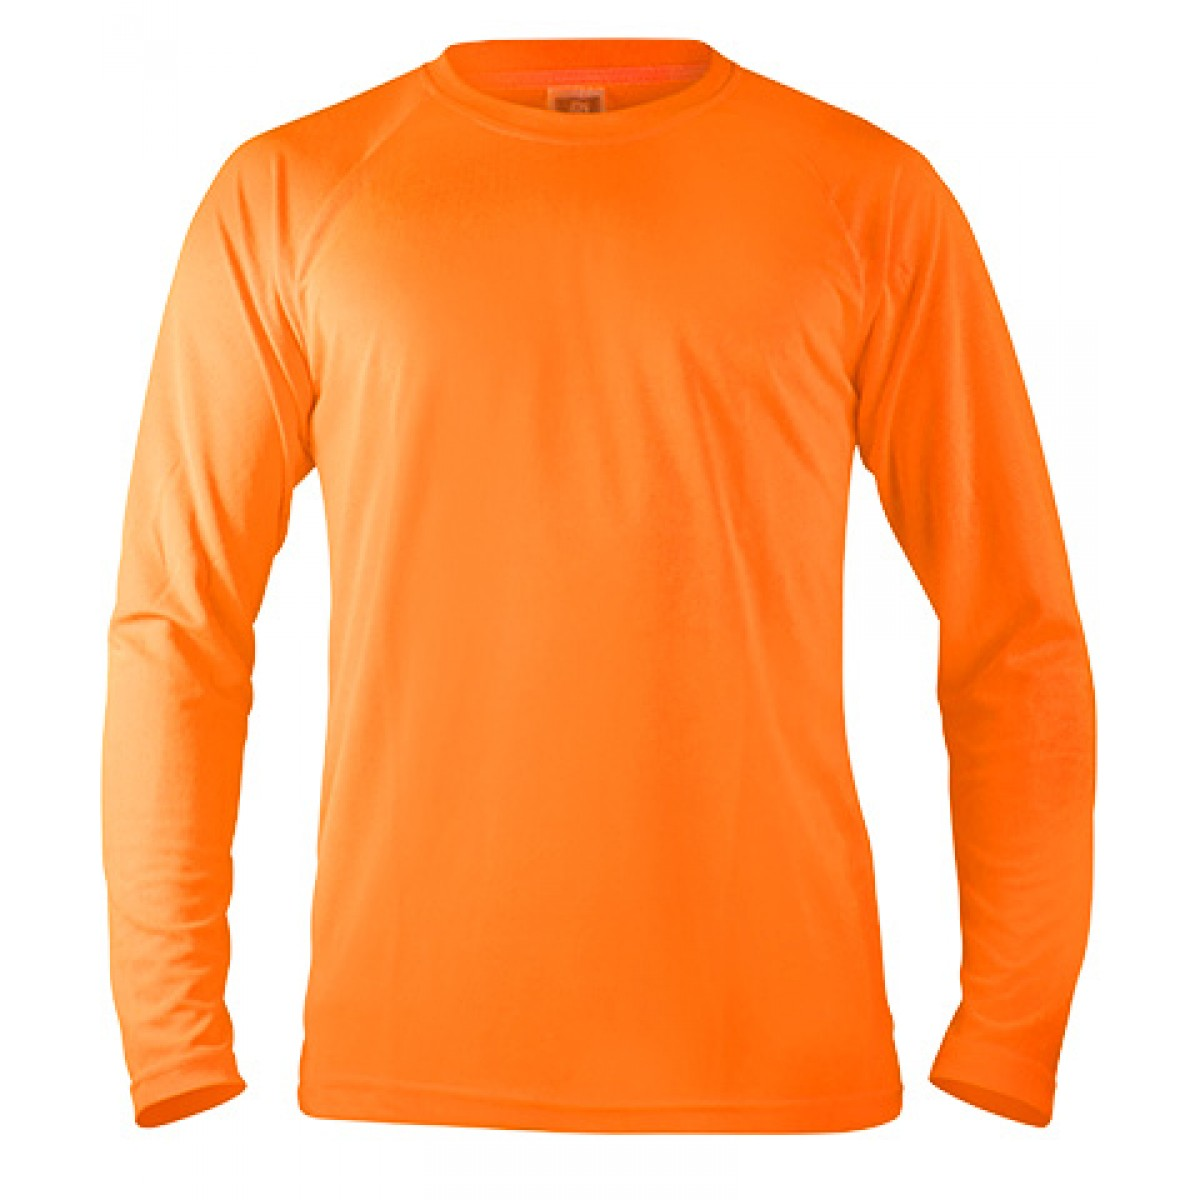 Long Sleeve Performance -Safety Orange-S